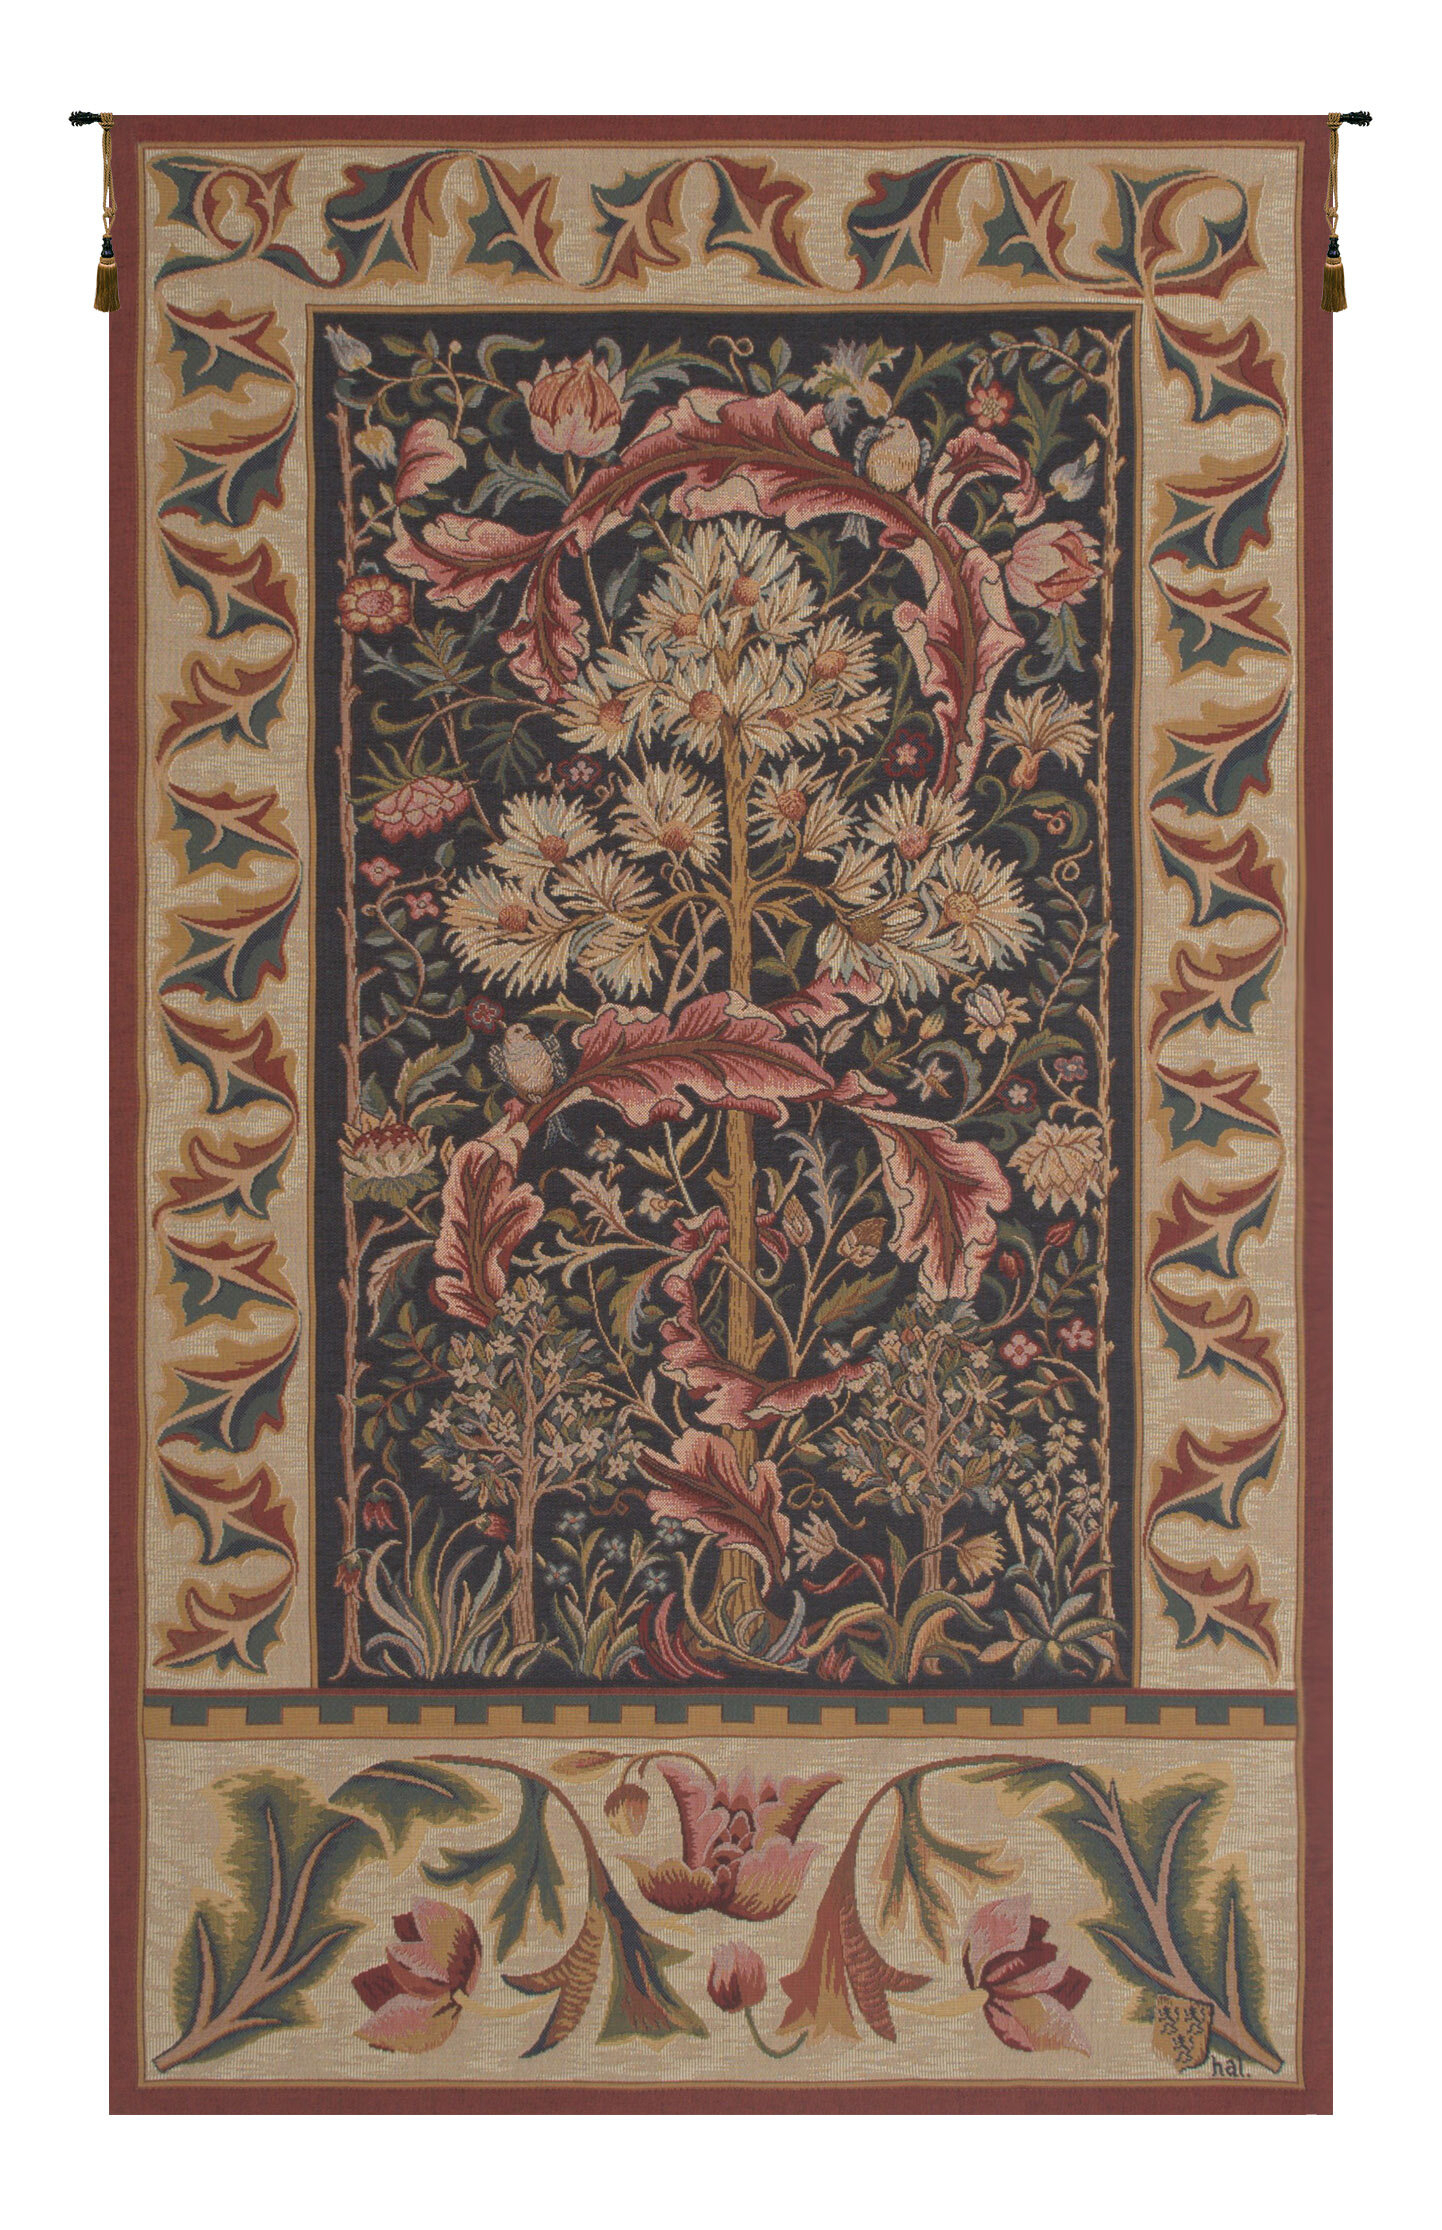 Blended Fabric Acanthus Tapestry Pertaining To Most Recent Blended Fabric In His Tapestries And Wall Hangings (View 5 of 20)